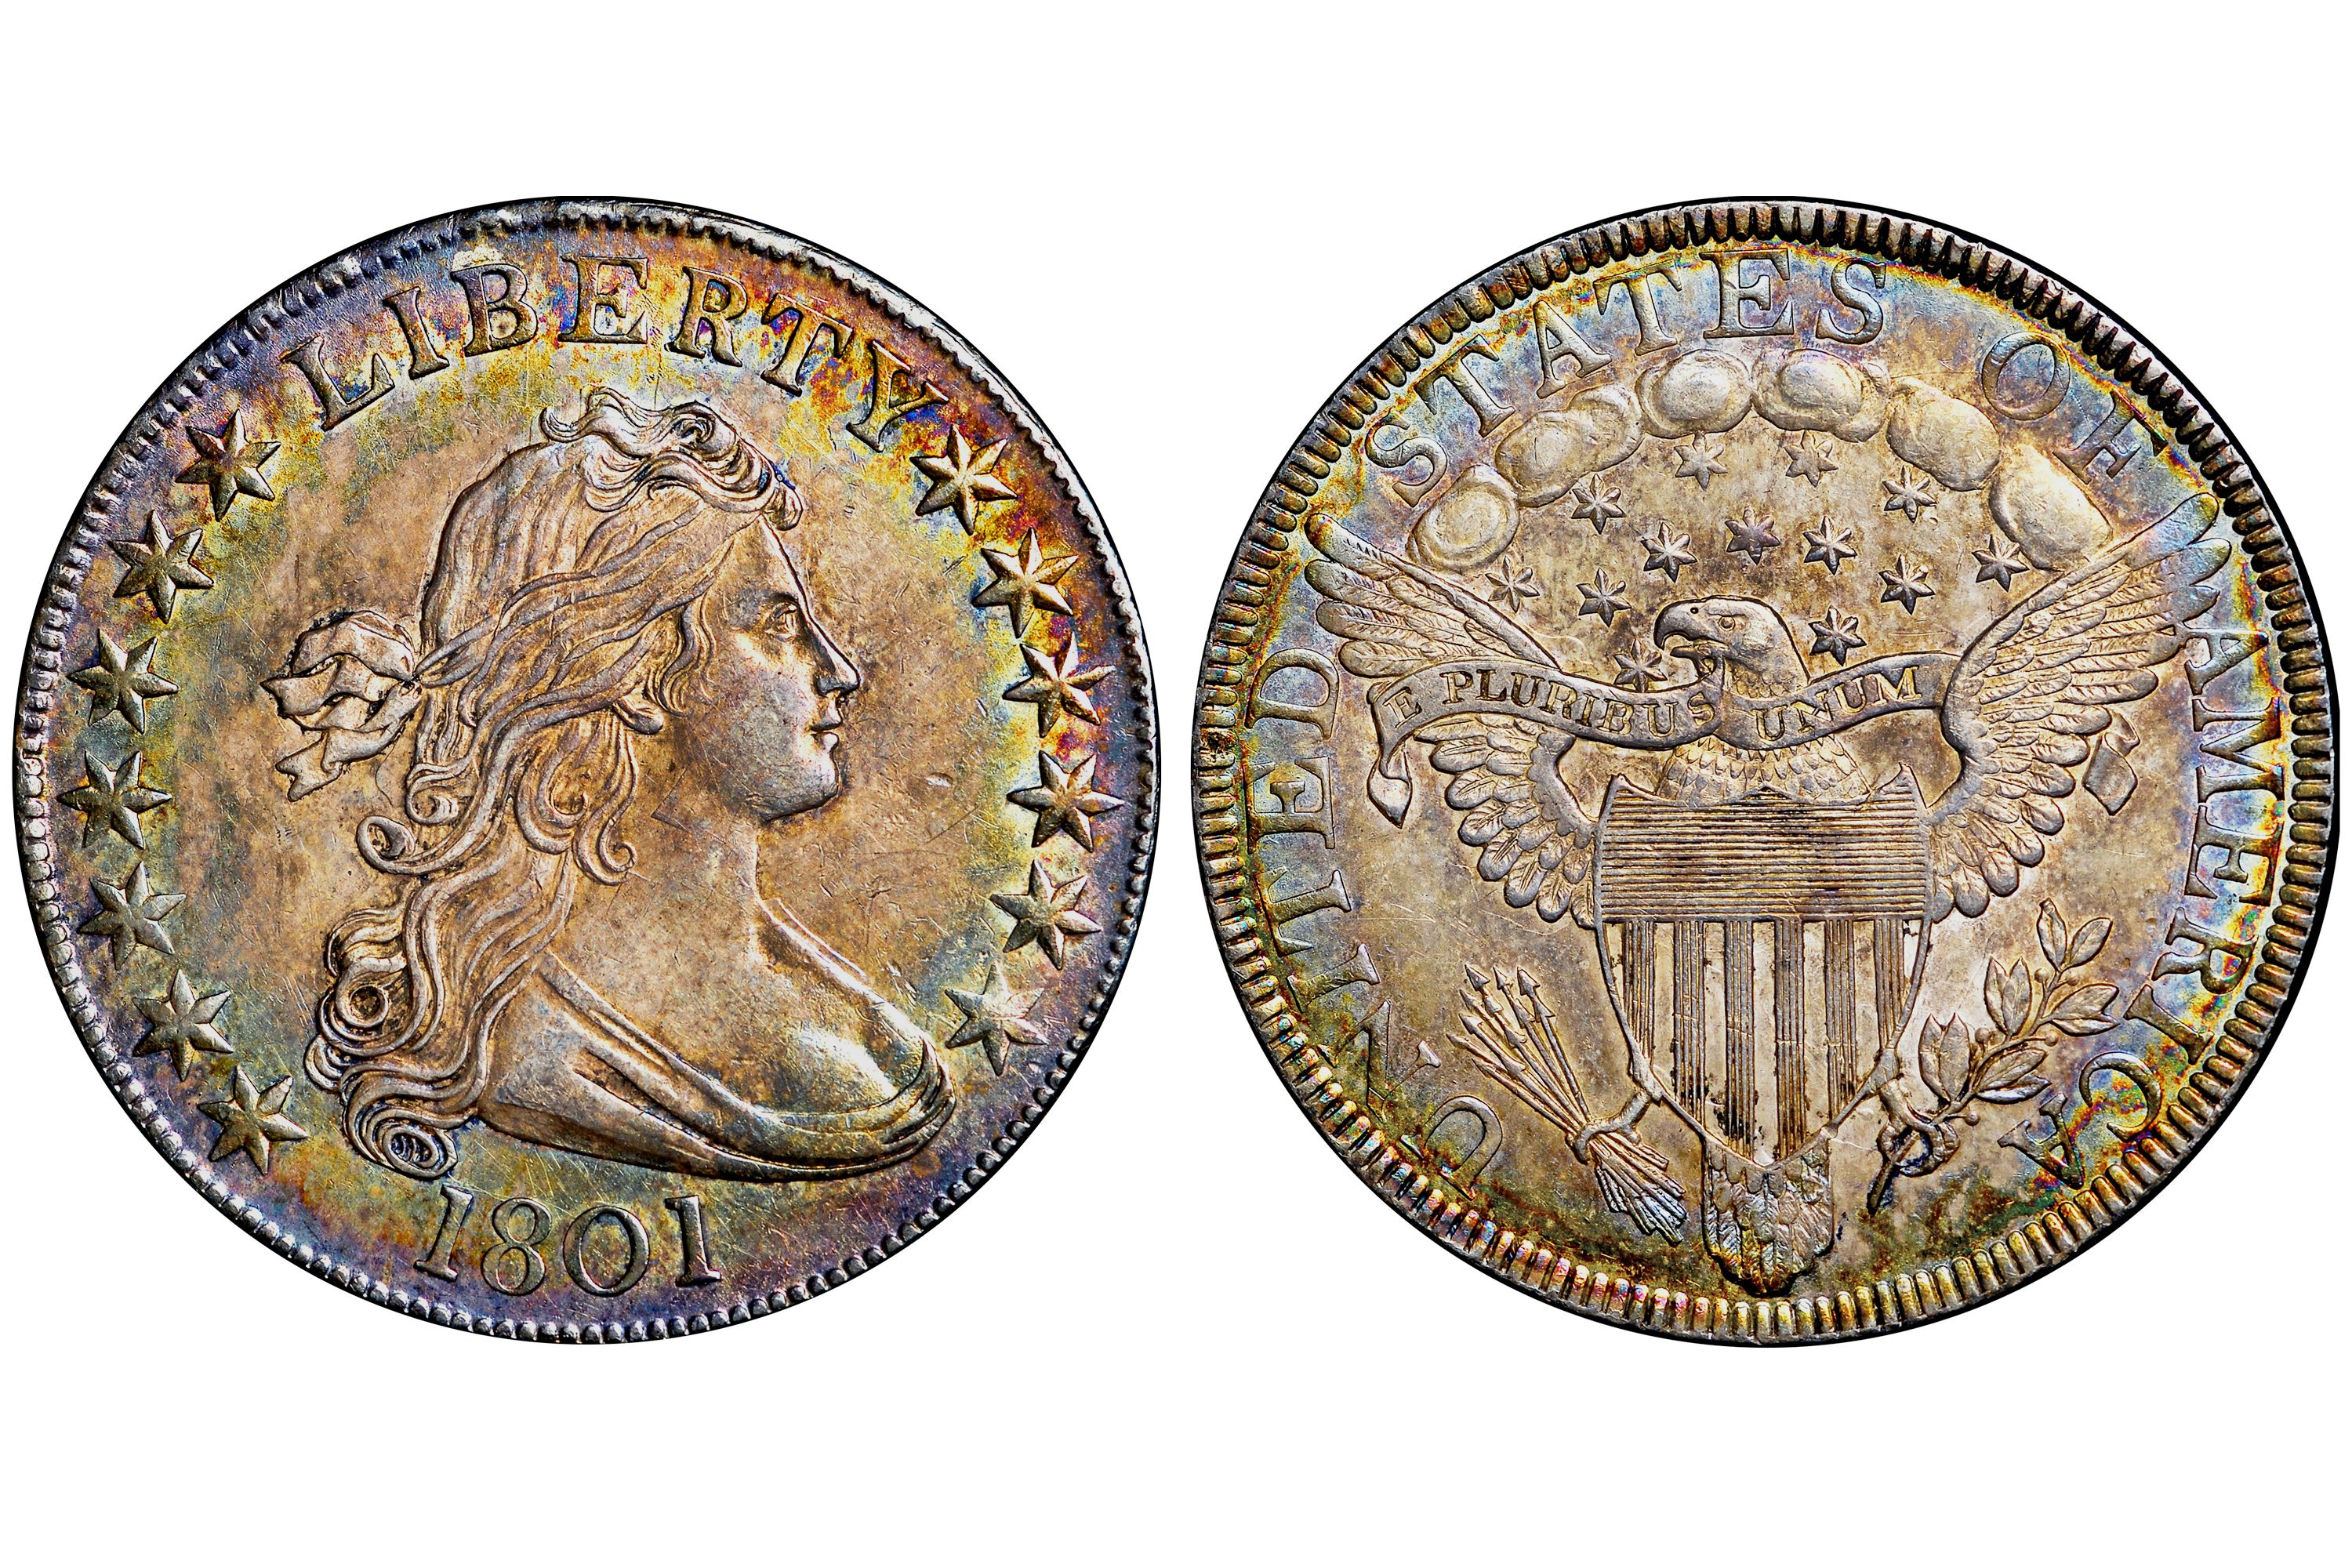 1801 Draped Bust Half Dollar graded MS-64 by NGC